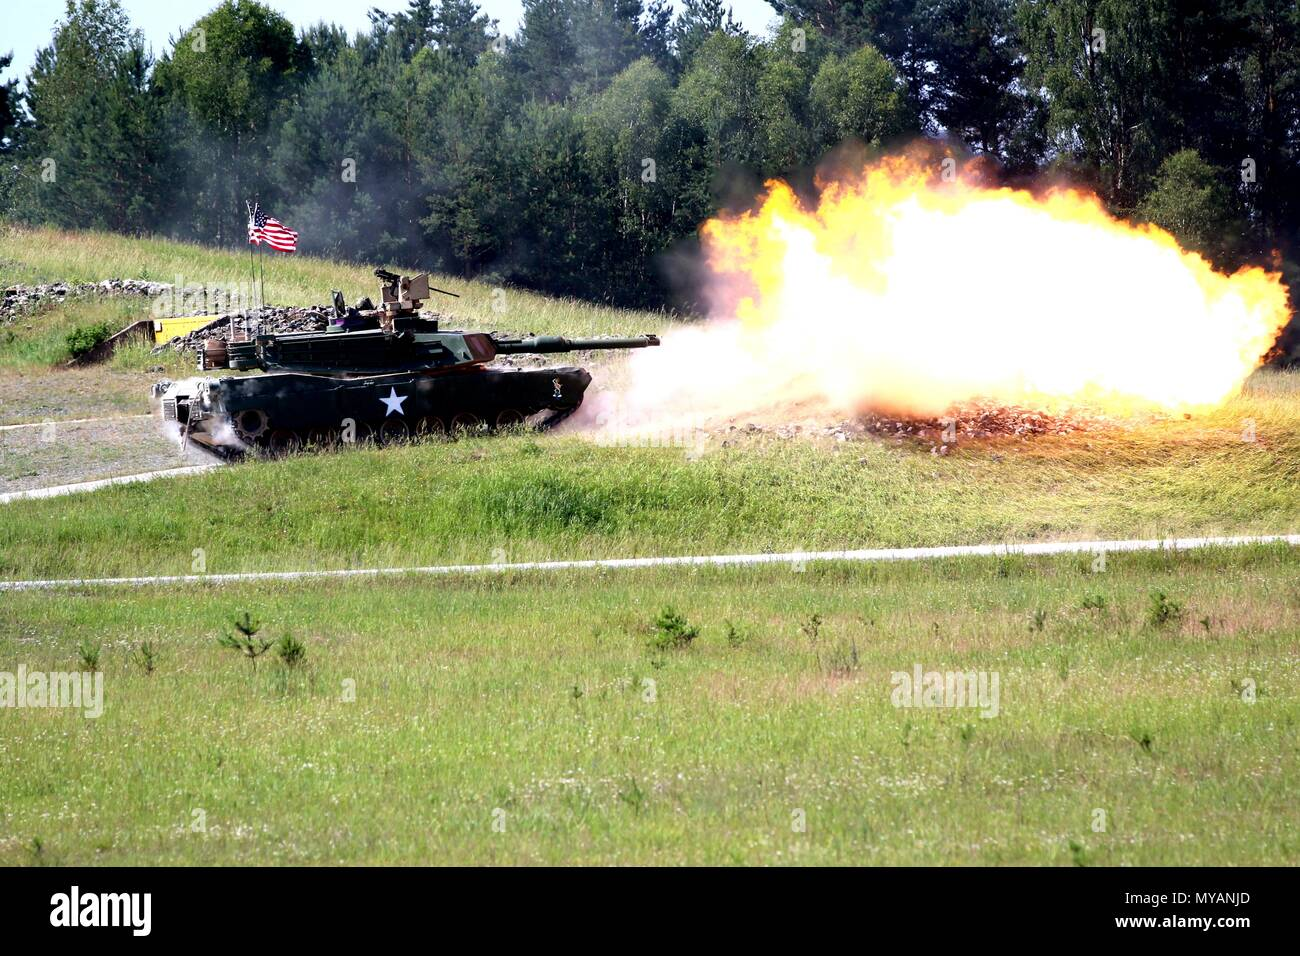 Soldiers from 2nd Battalion, 70th Armor Regiment, 2nd Armored Brigade Combat Team, 1st Infantry Division, fire at a target while conducting the defensive position live fire portion of the Strong Europe Tank Challenge at the Grafenwoehr Training Area, Germany, on June 5.The Strong Europe Tank Challenge is an annual training event designed to give participating nations a dynamic, productive and fun environment in which to foster military partnerships, form Soldier-level relationships, and share tactics, techniques and procedures, June 5, 2018. The participating nations this year are Austria, Fra - Stock Image